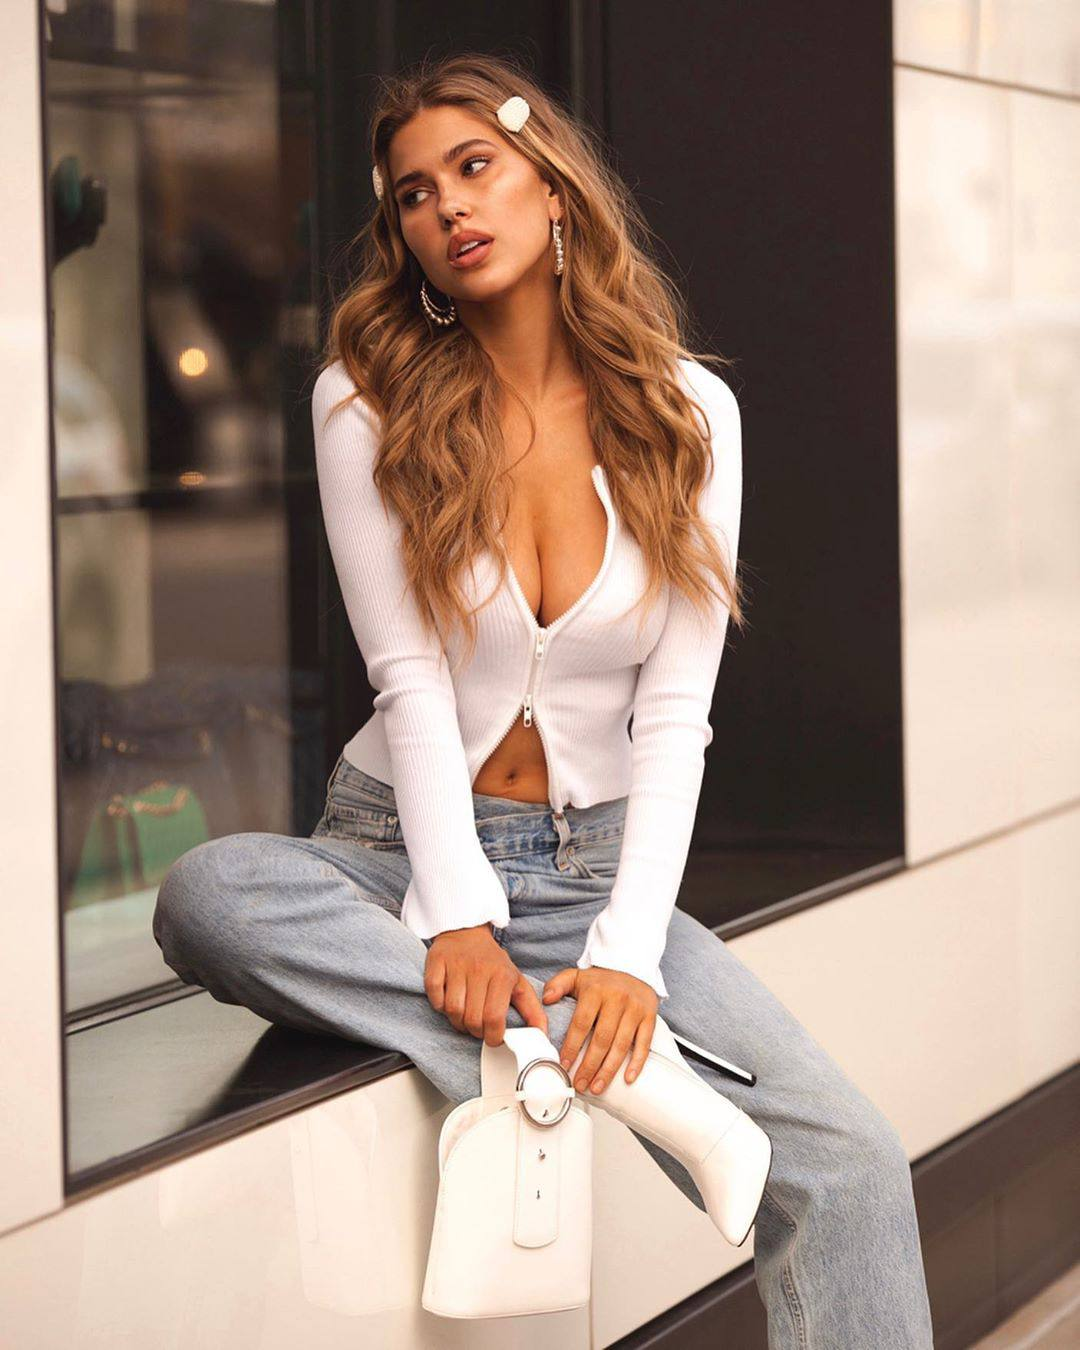 Kara Del Toro Beautiful Picture